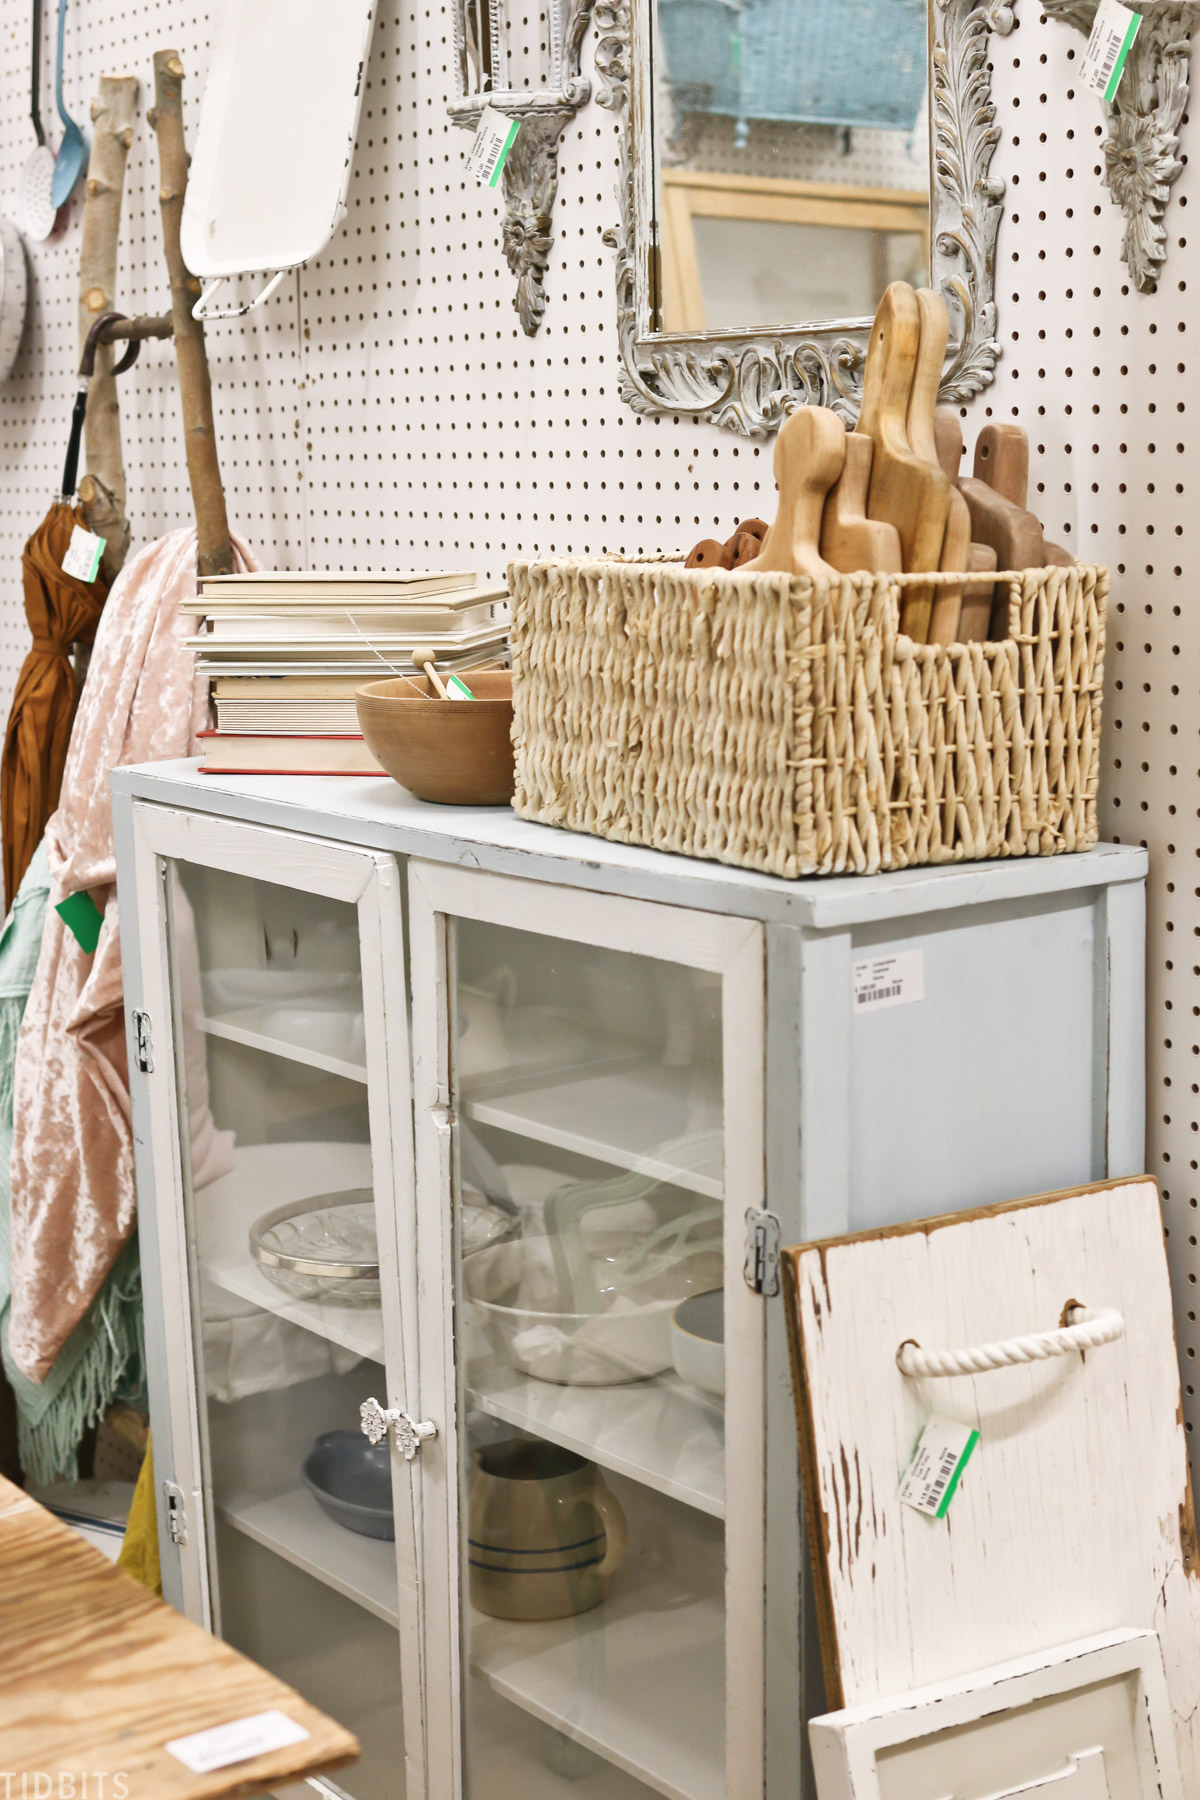 antique cabinet with glass doors with basket on top that has cutting boards in it